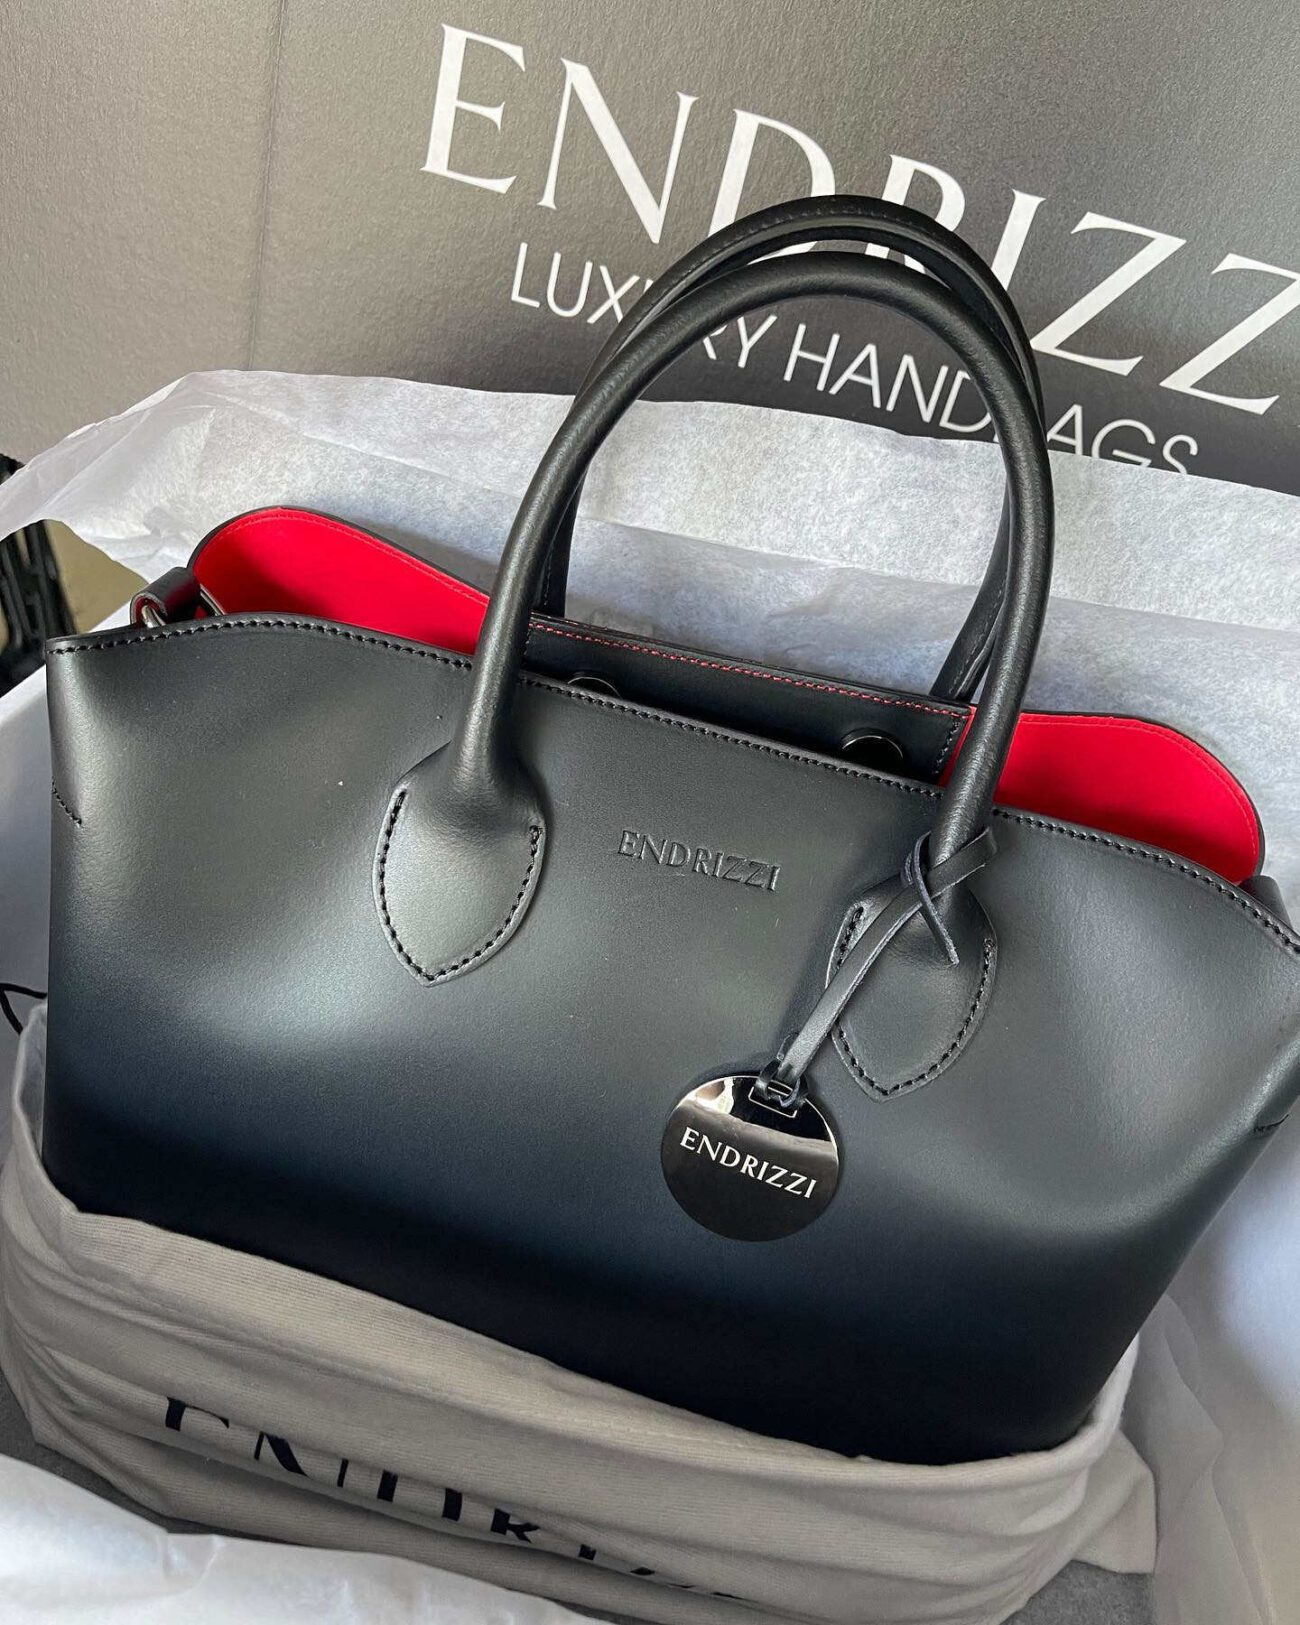 Moda Endrizzi is launching a new line of Italian, handcrafted handbags. See if these new bags will put the likes of Armani and Prada to shame here.